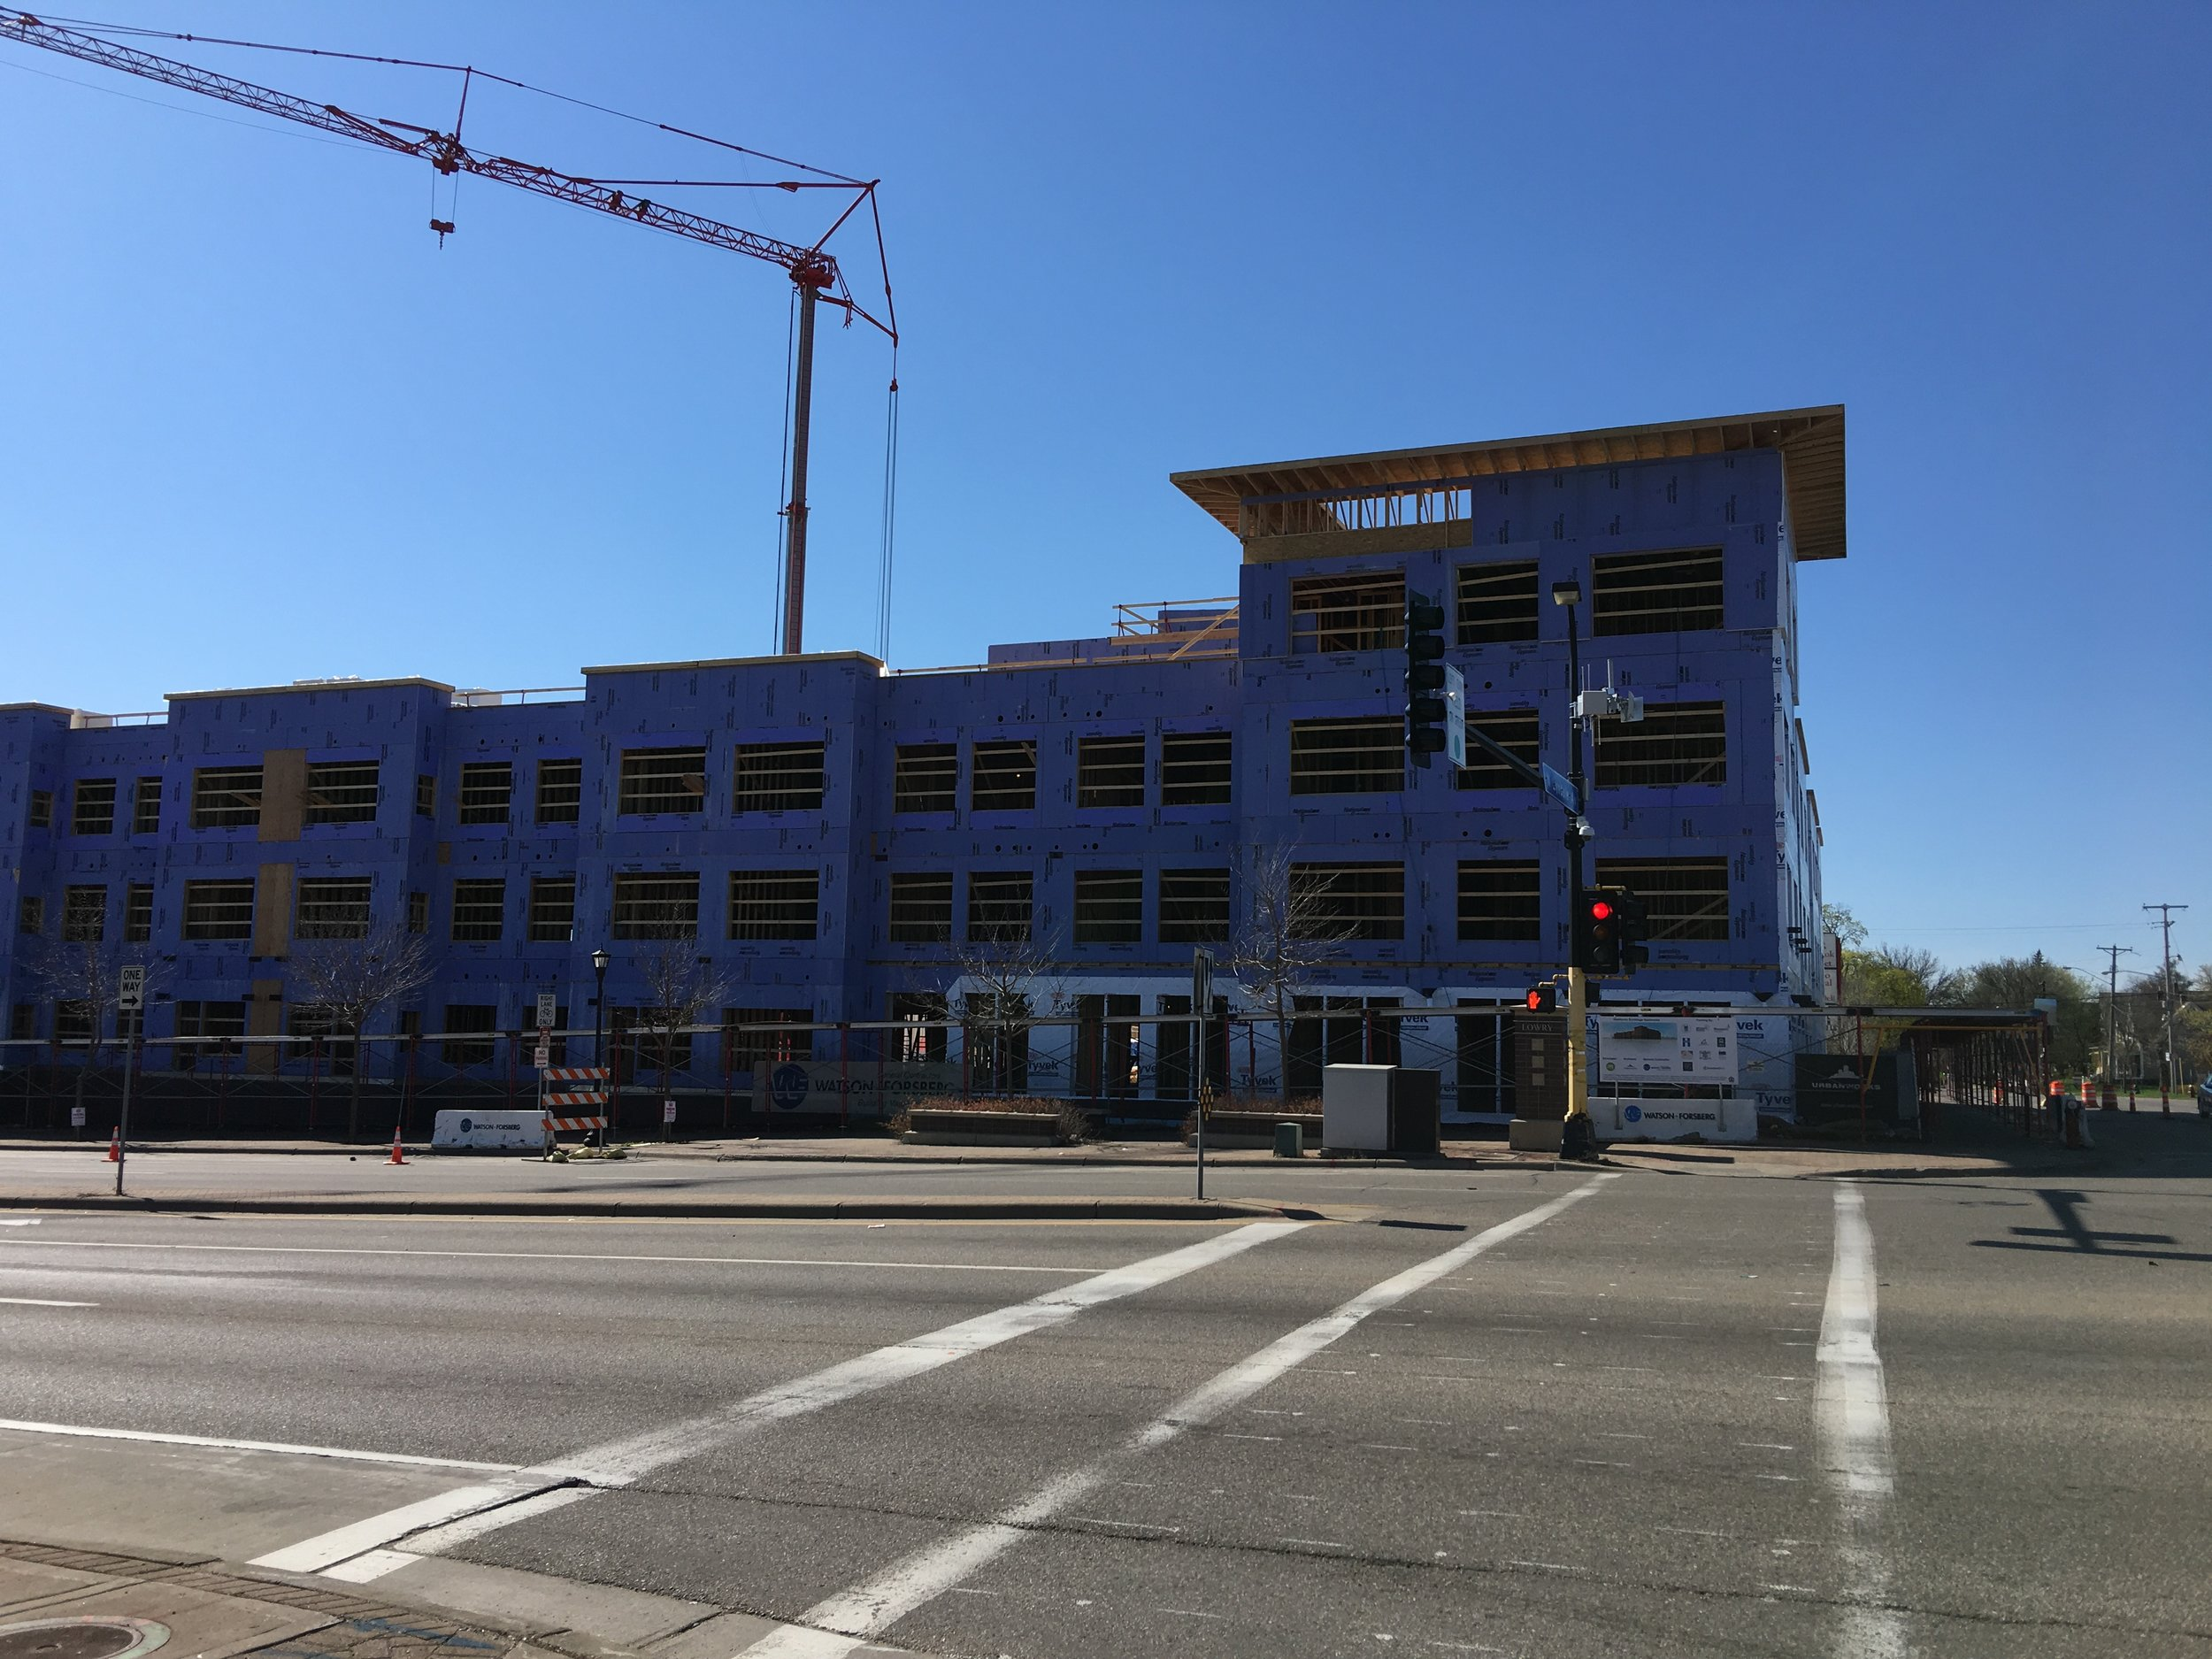 New affordable housing project by PPL at Lyndale Avenue N and Lowry Avenue N